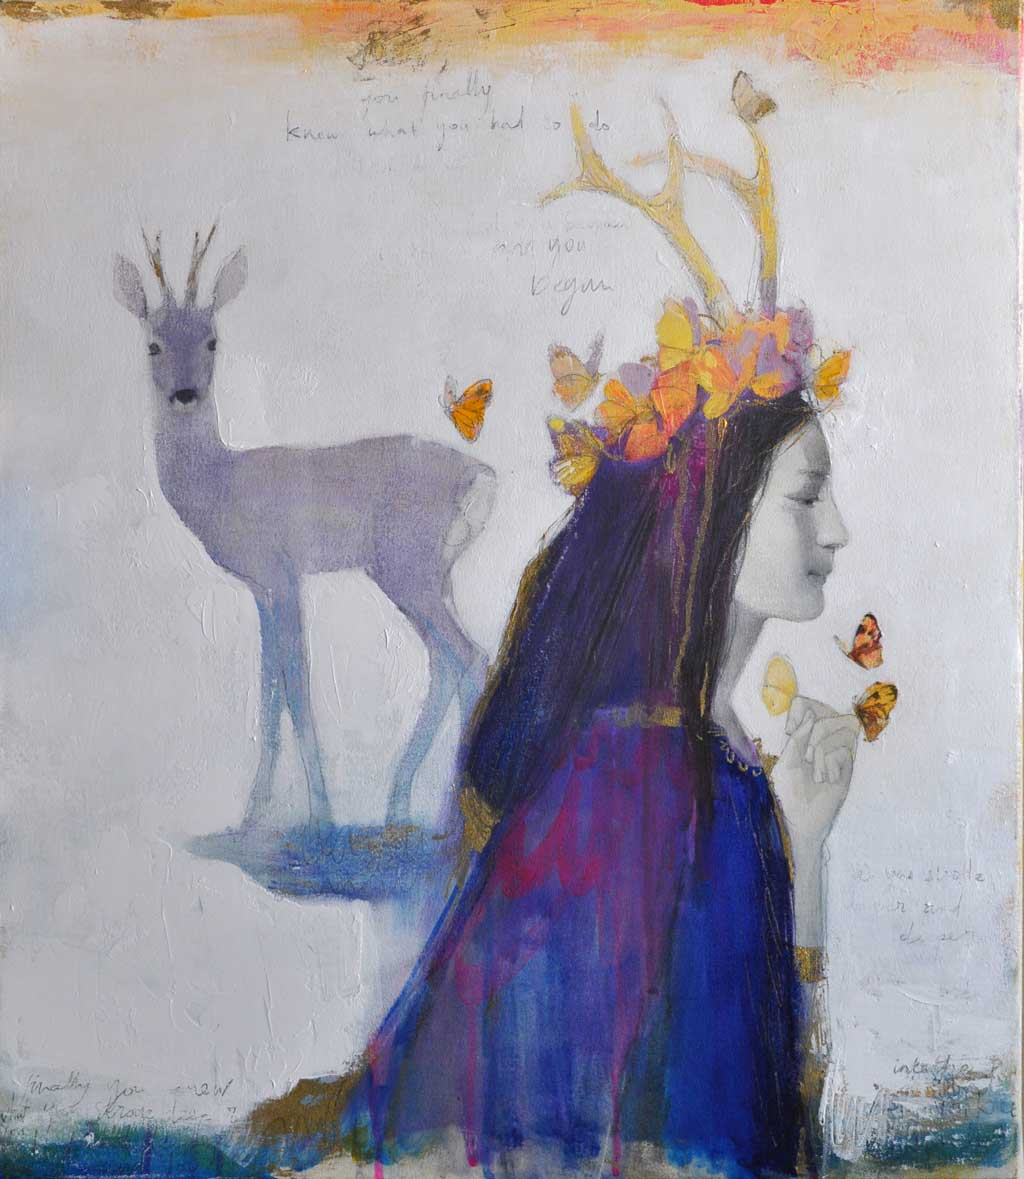 Buy 'Brigit' an original painting by Scottish artist Lucy Campbell at The Biscuit Factory